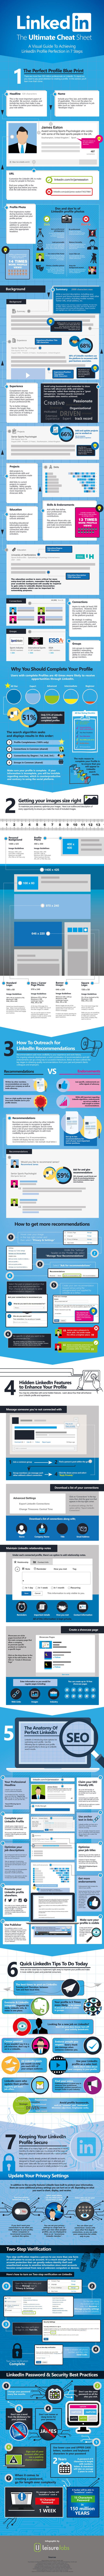 LinkedIn: The Ultimate Cheat Sheet